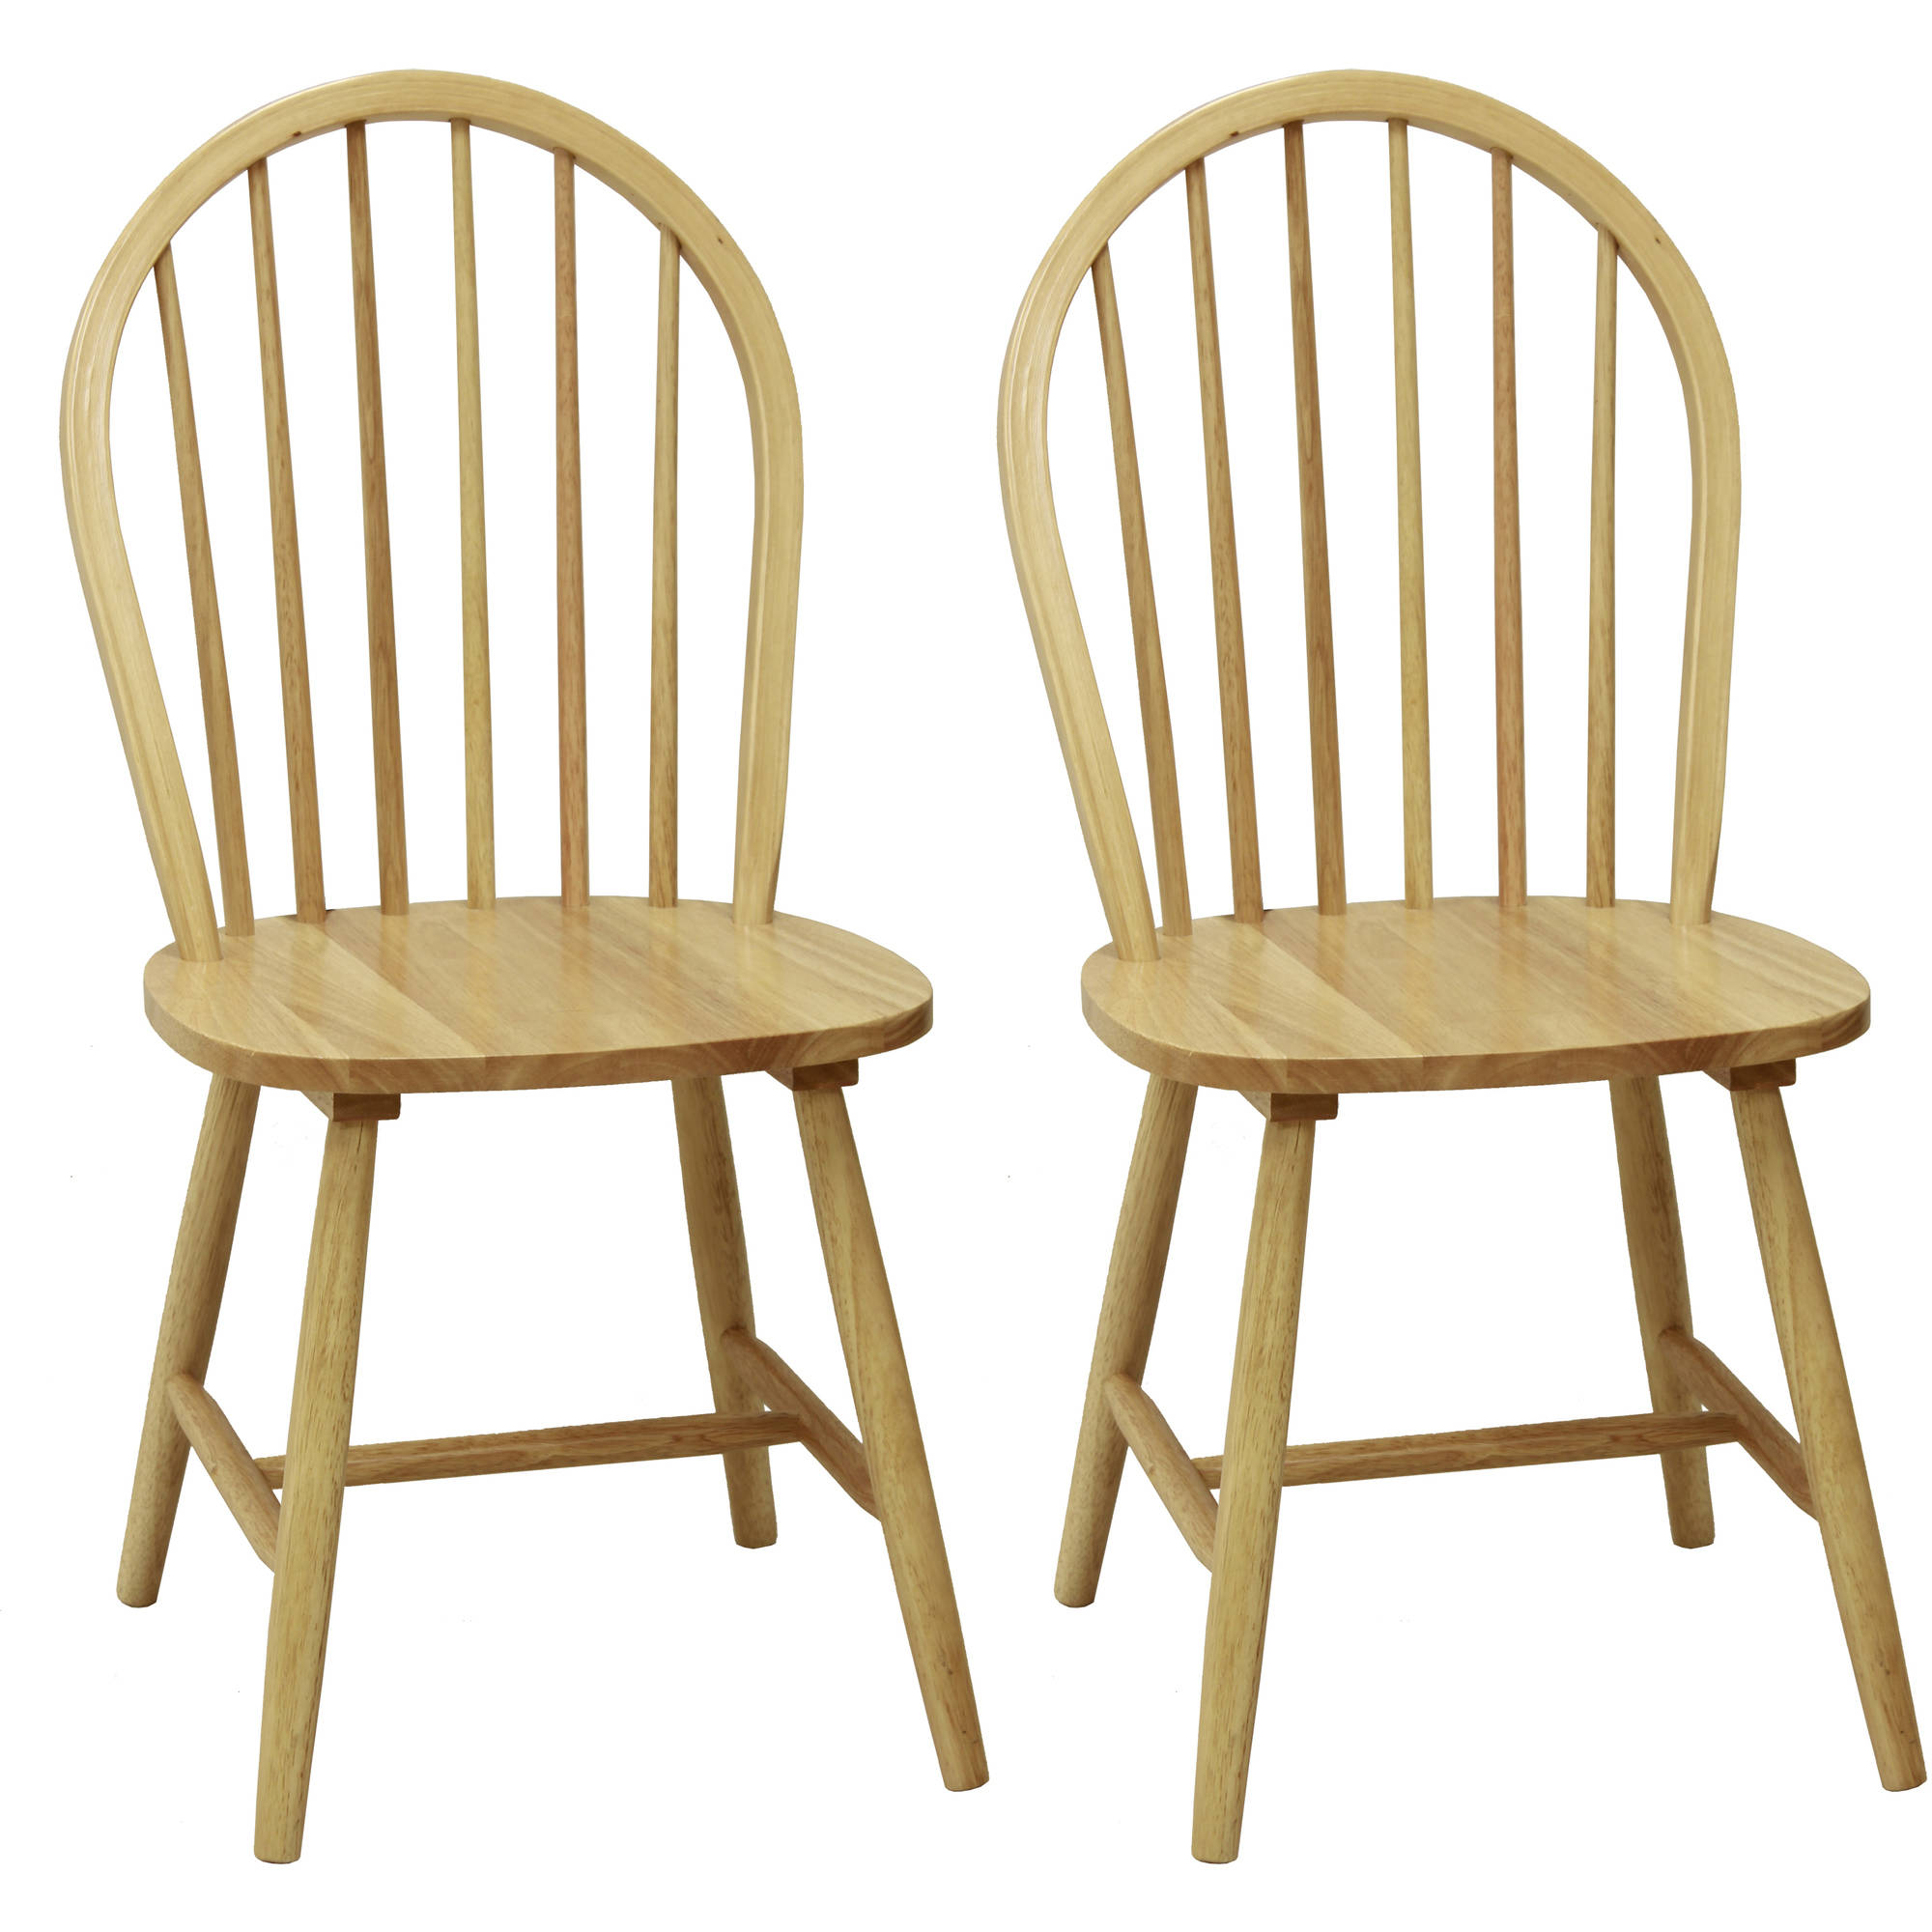 Mainstays Windsor Dining Chairs, Set of 2, Natural Finish by Cheyenne Products